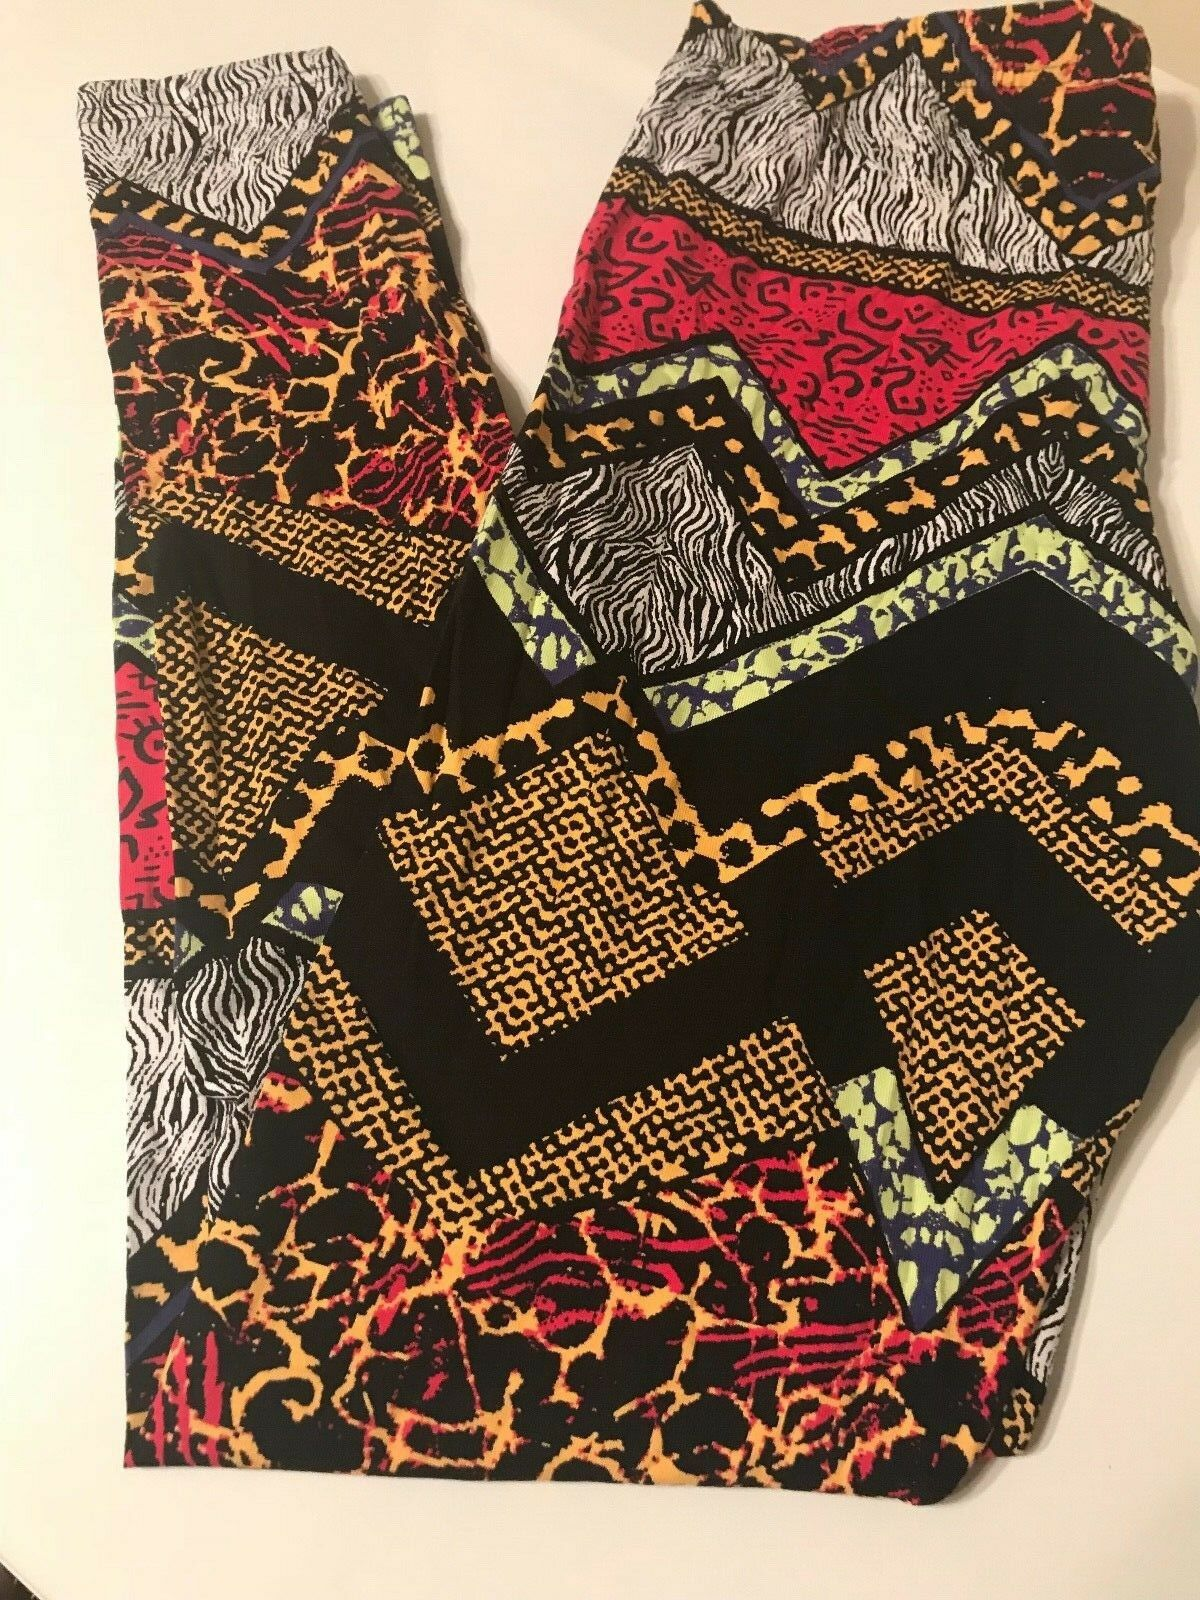 H&M TREND DIVIDED ABSTRACT MIXED PRINT LEGGINGS   PANTS NWT Größe LARGE L